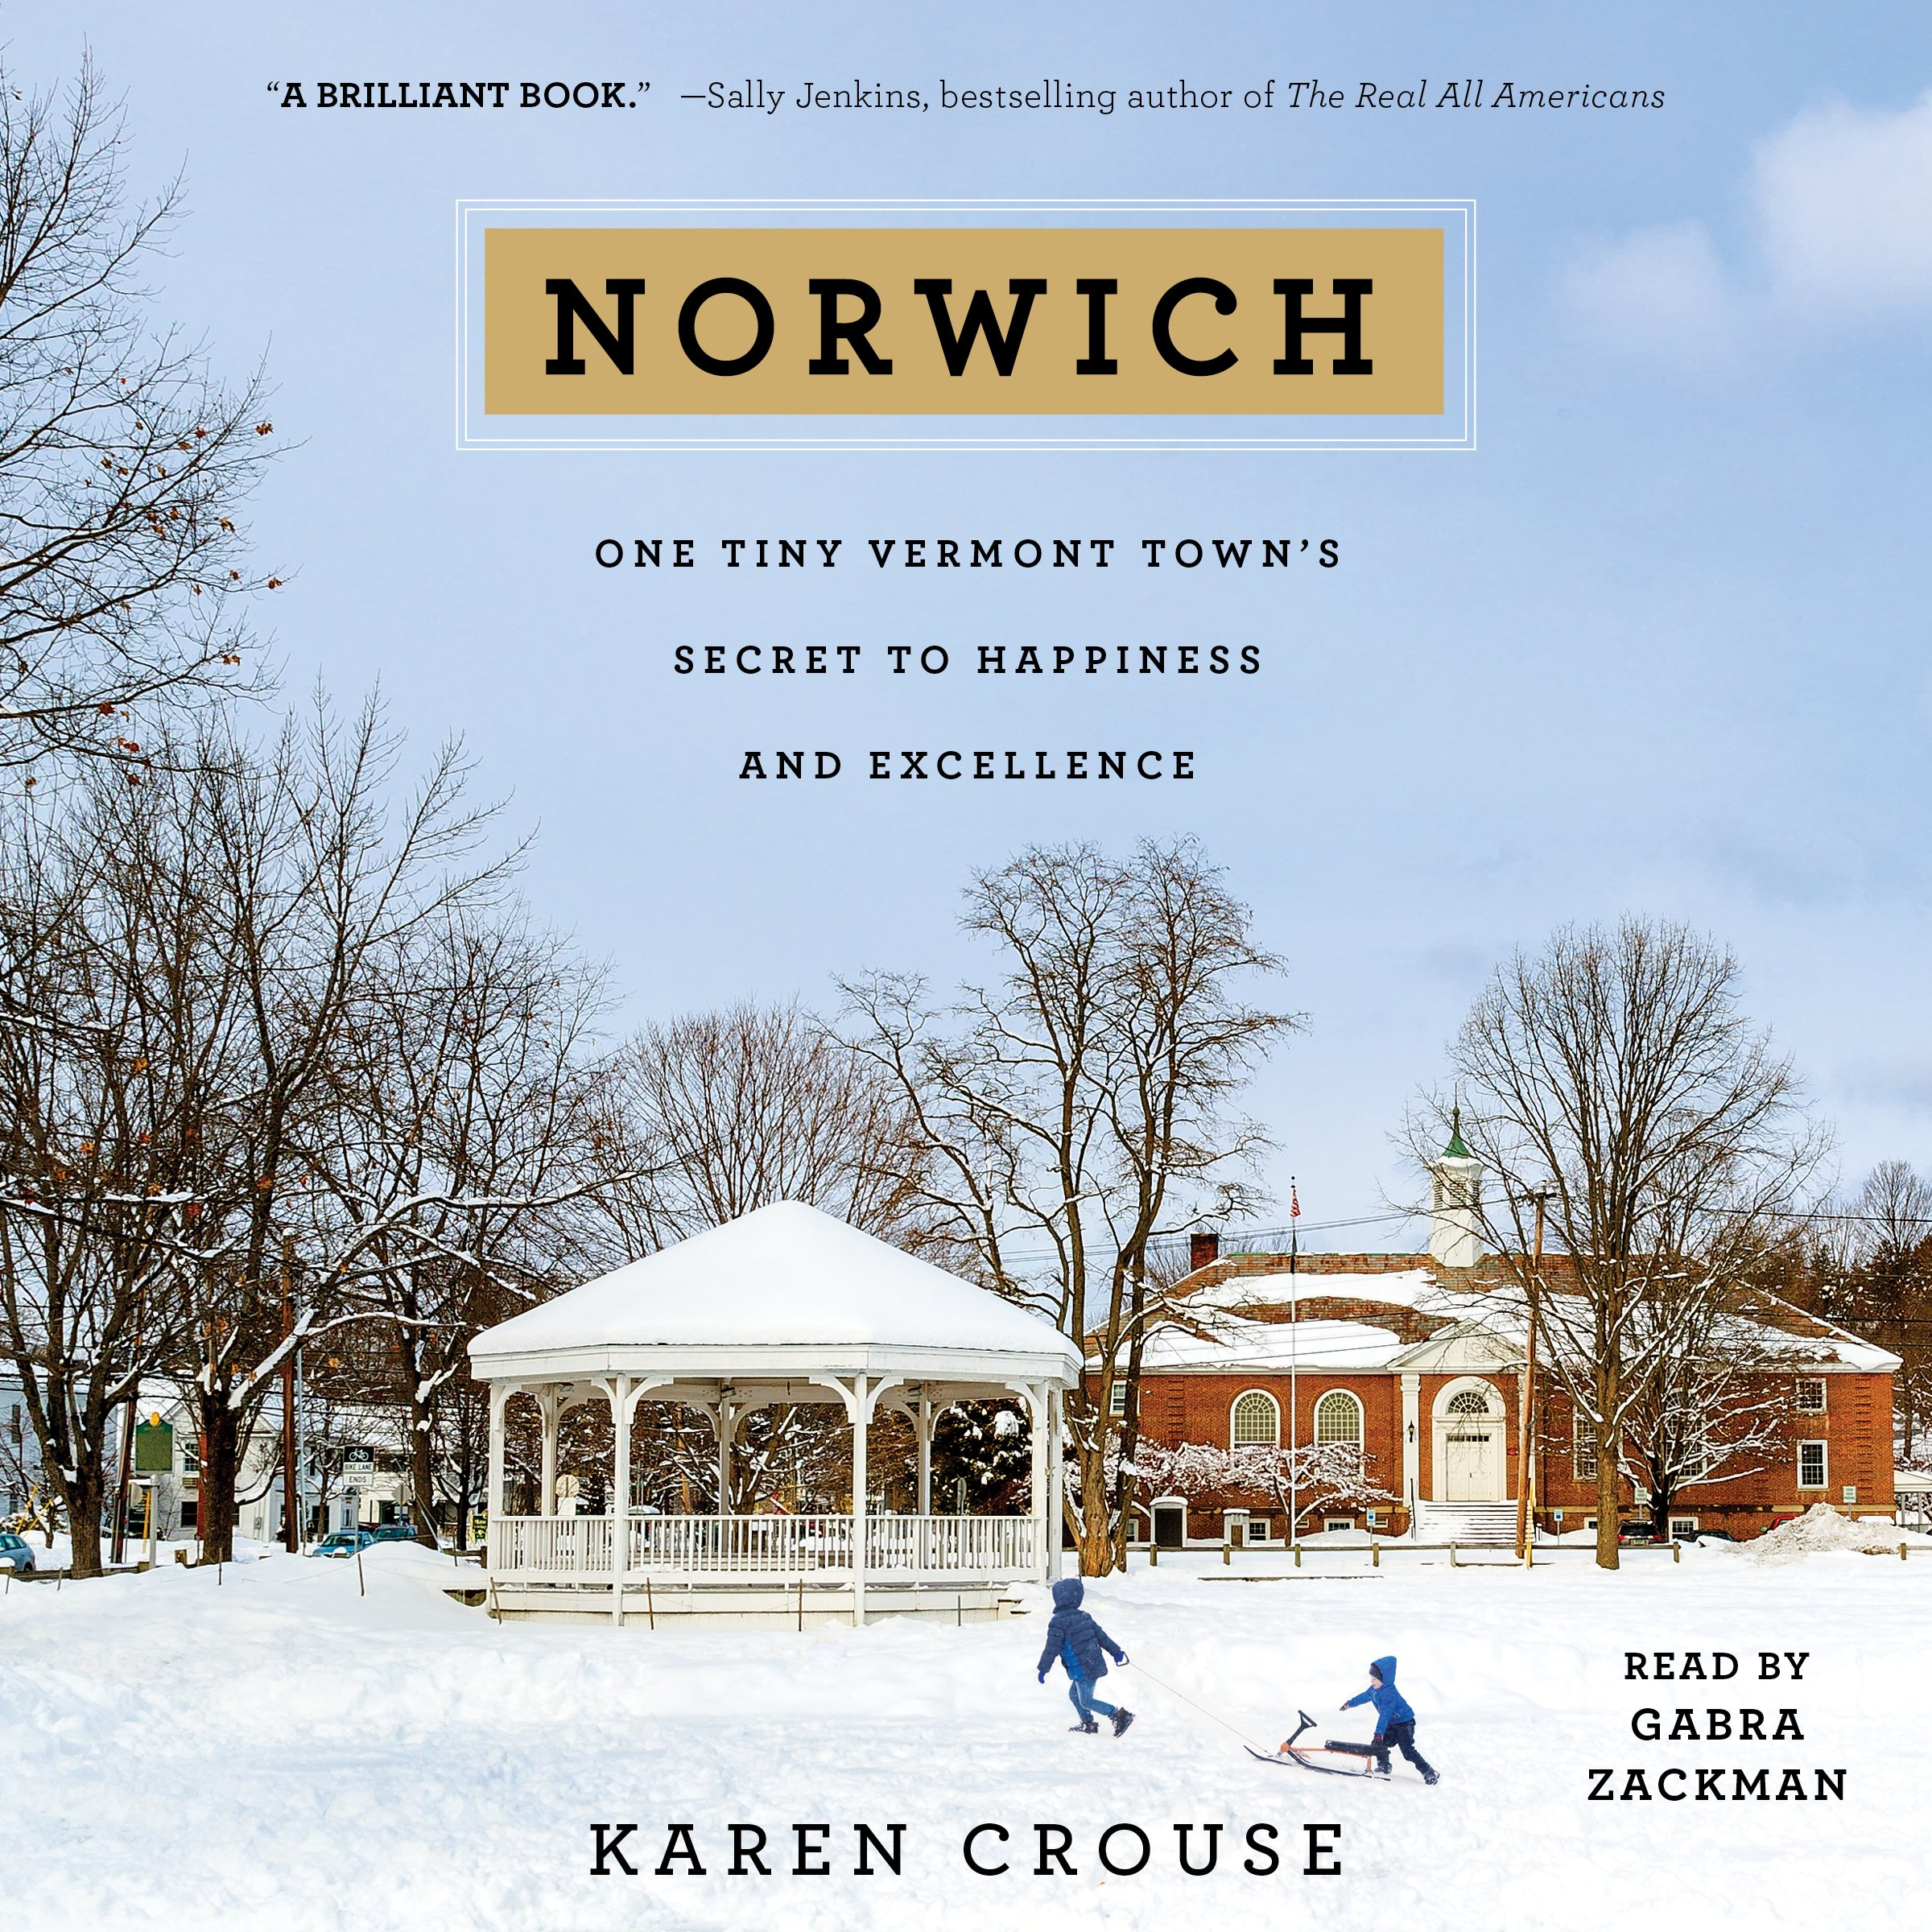 Norwich: One Tiny Vermont Town's Secret to Happiness and Excellence by Simon & Schuster Audio (Image #1)